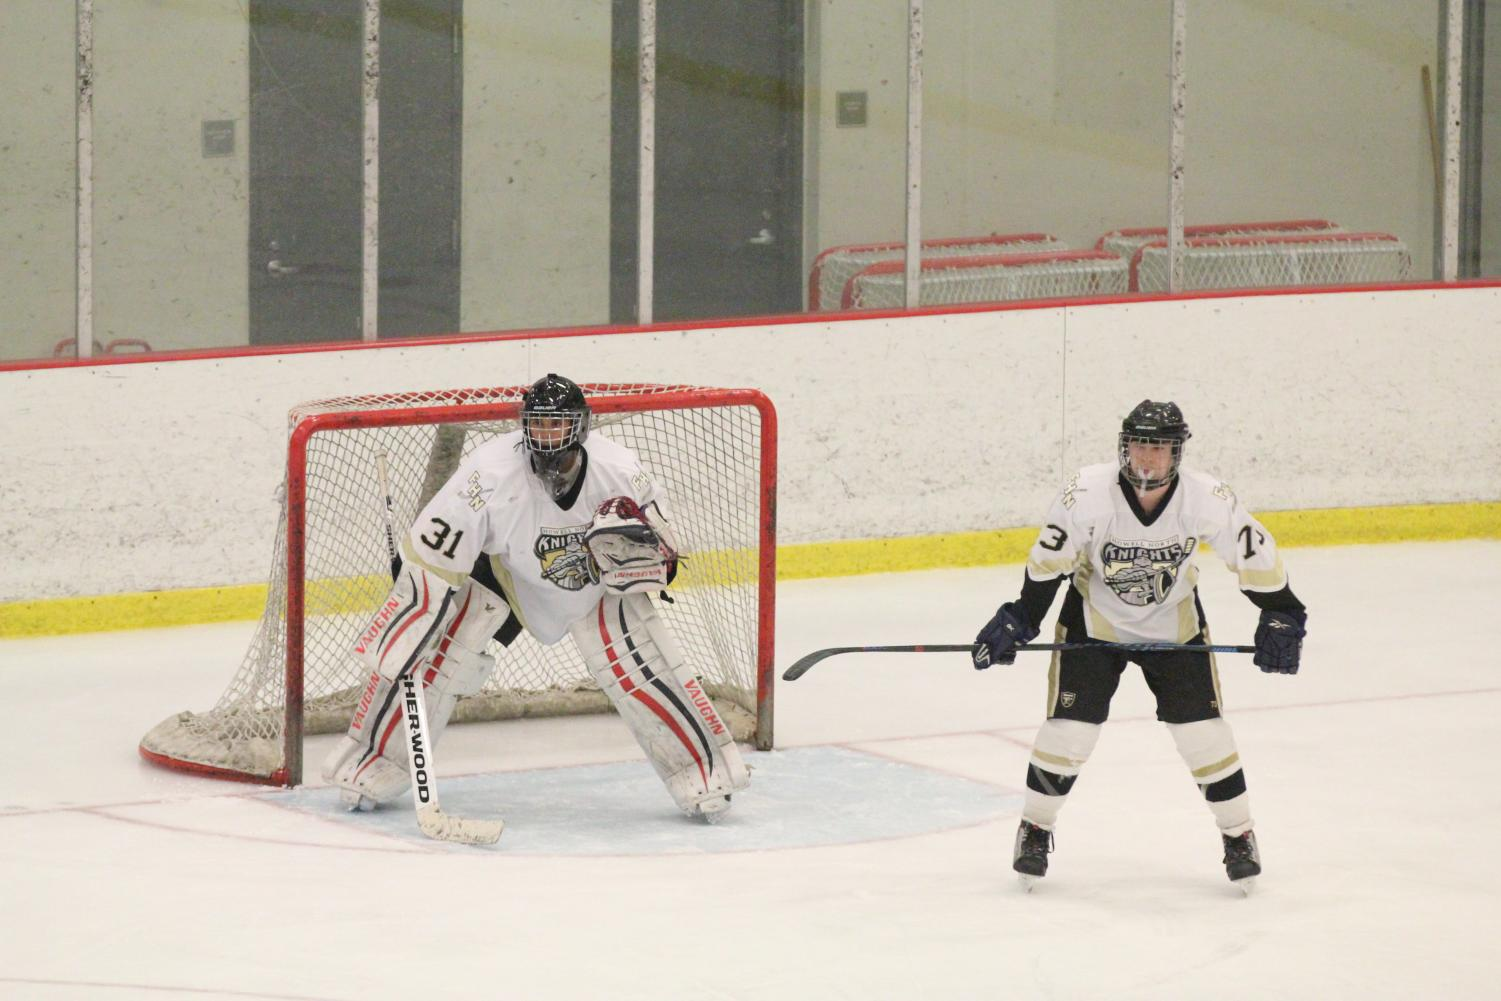 Senior Drake Johnston and junior goalie Charlie Jones guard the goal in a match against Fort Zumwalt South